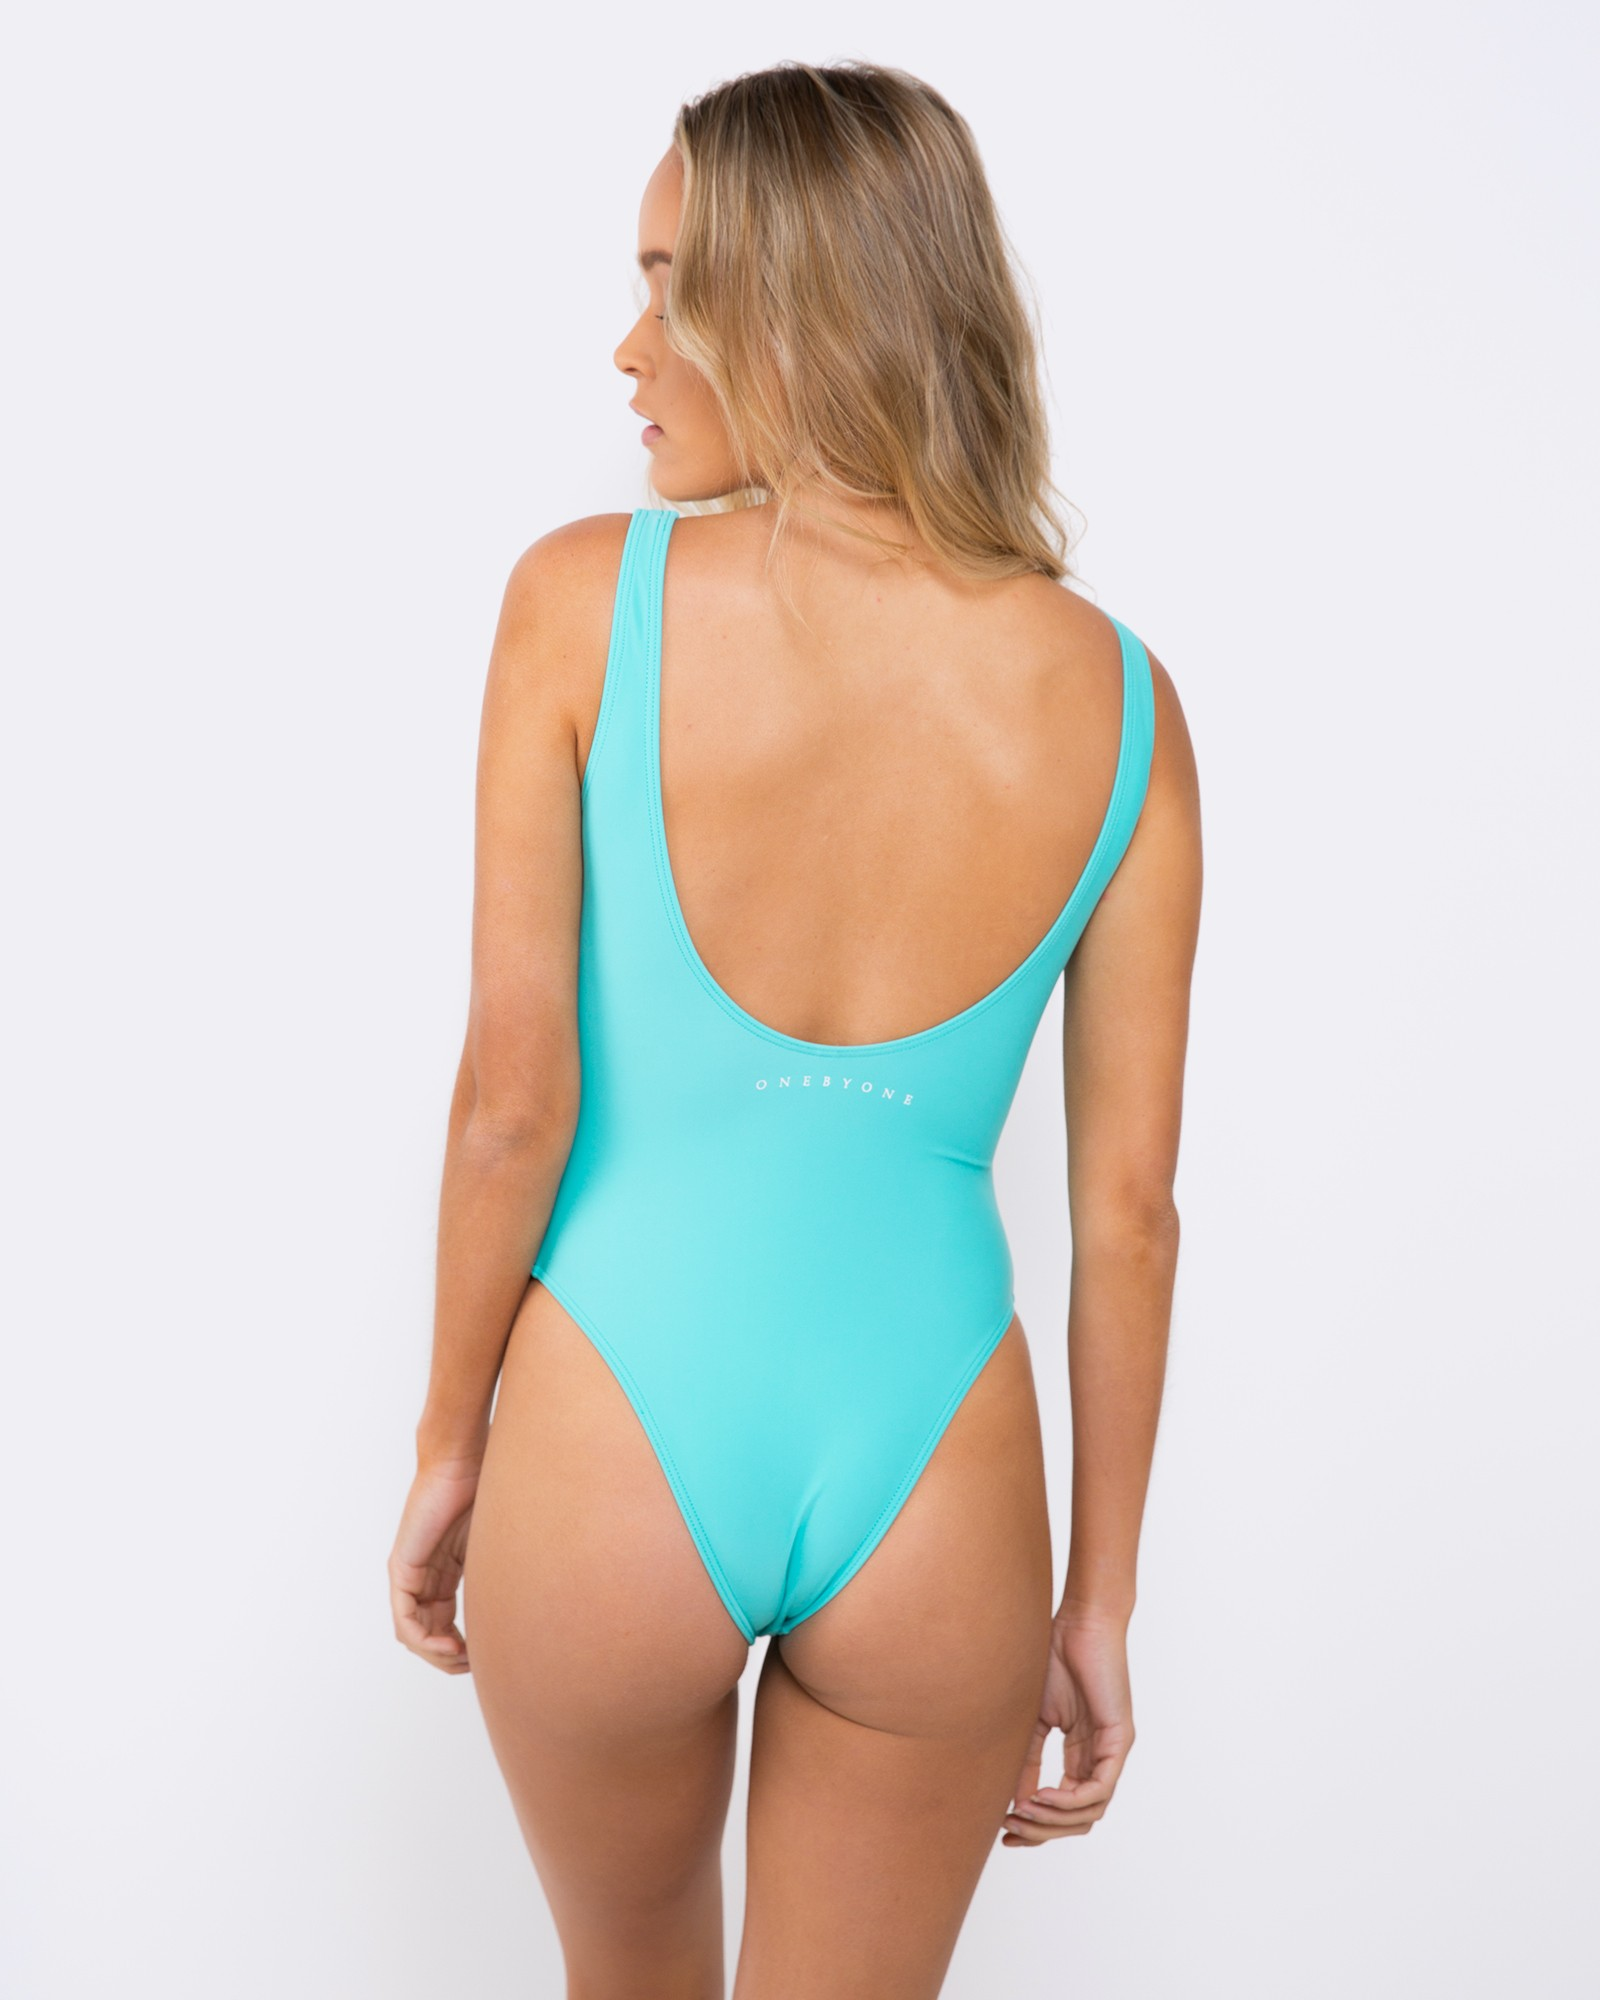 BLANK TEAL SWIMSUIT